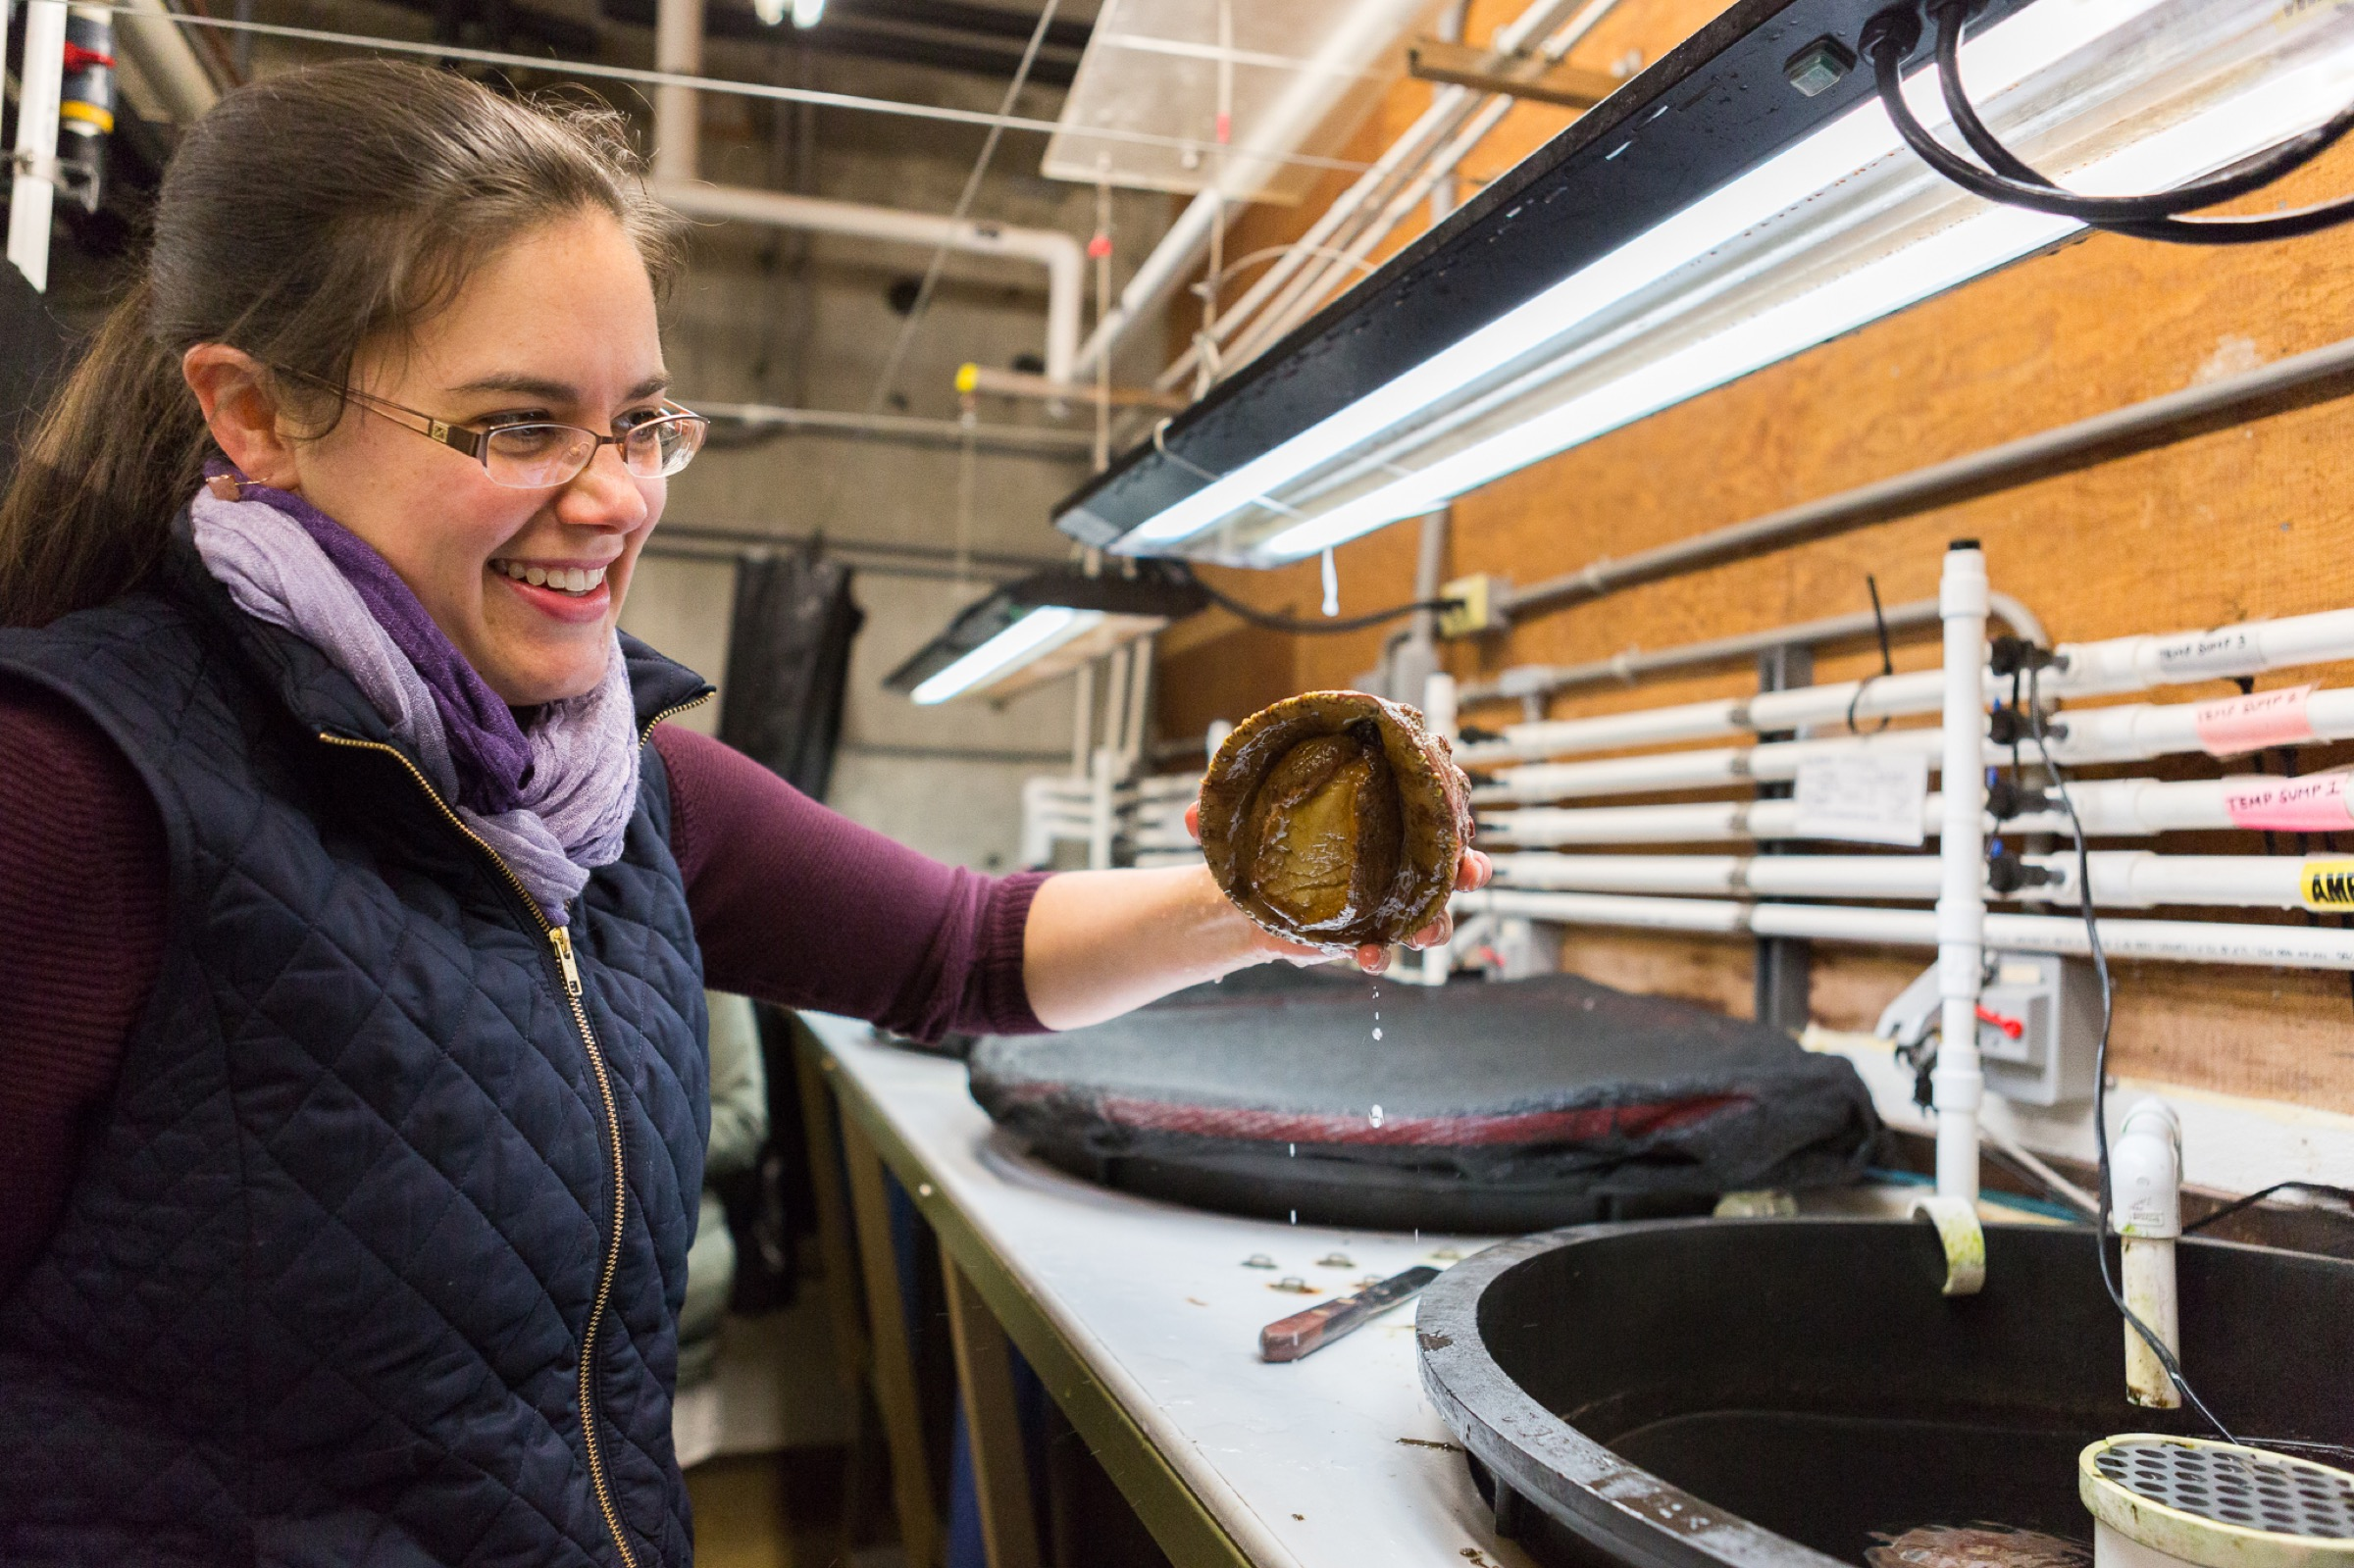 Kristin Aquilino holds up an abalone she has carefully scraped off the surface of a holding tank by sliding the spatula under its suctioning foot. White abalone are hemophiliacs, which means their blood doesn't clot, so to handle one is a nerve-wracking, delicate process.